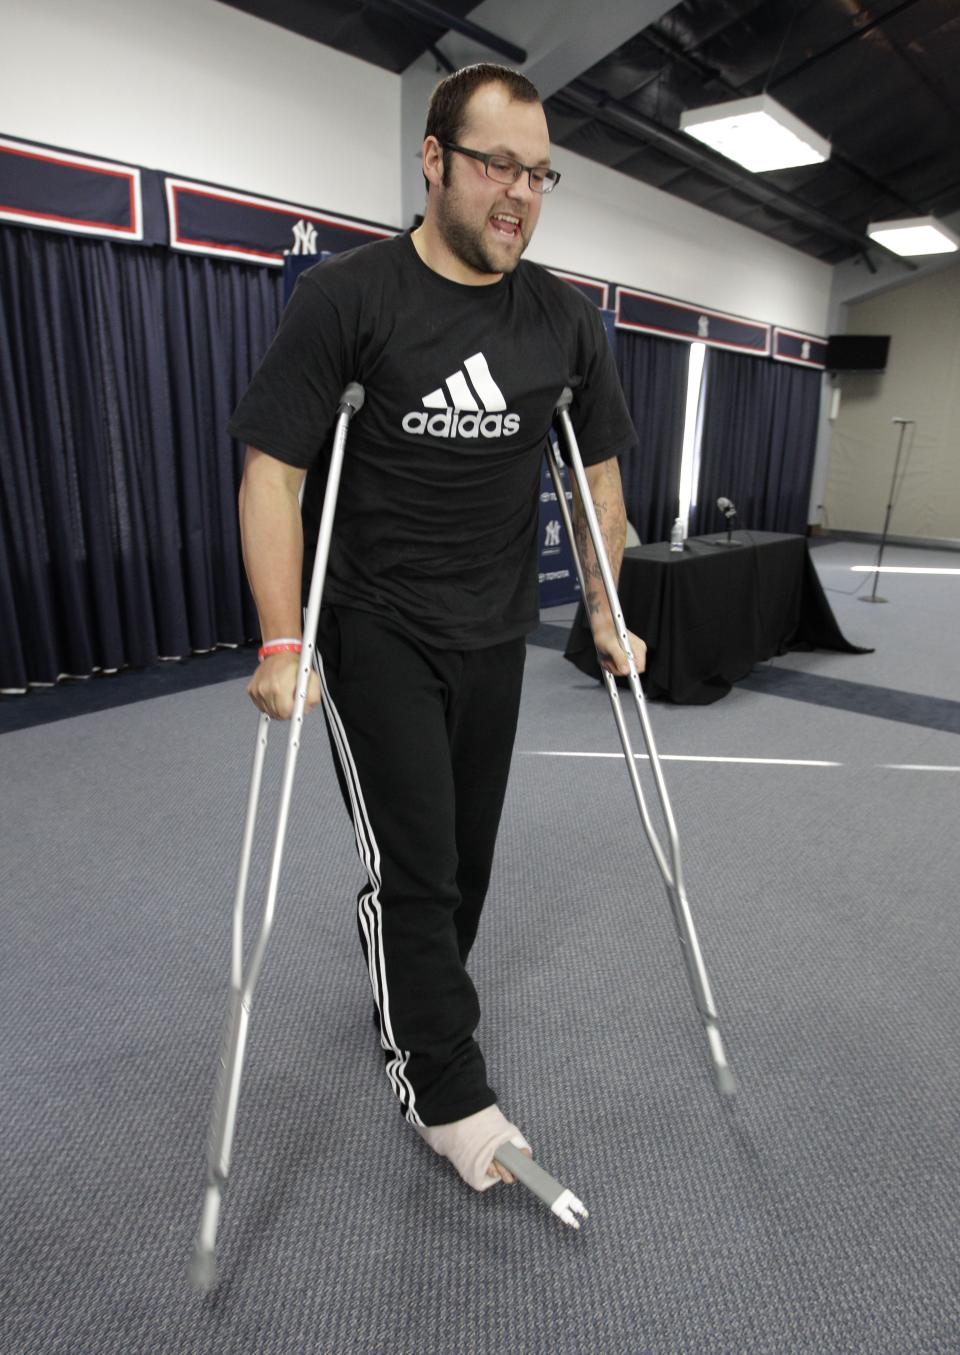 New York Yankees relief pitcher Joba Chamberlain uses crutches as he leaves a news conference during which he talked about his recent foot injury, at Steinbrenner Field in Tampa, Fla., Tuesday, March 27, 2012. Chamberlain injured his ankle jumping on a trampoline with his son while he was recovering from Tommy John surgery. (AP Photo/Kathy Willens)